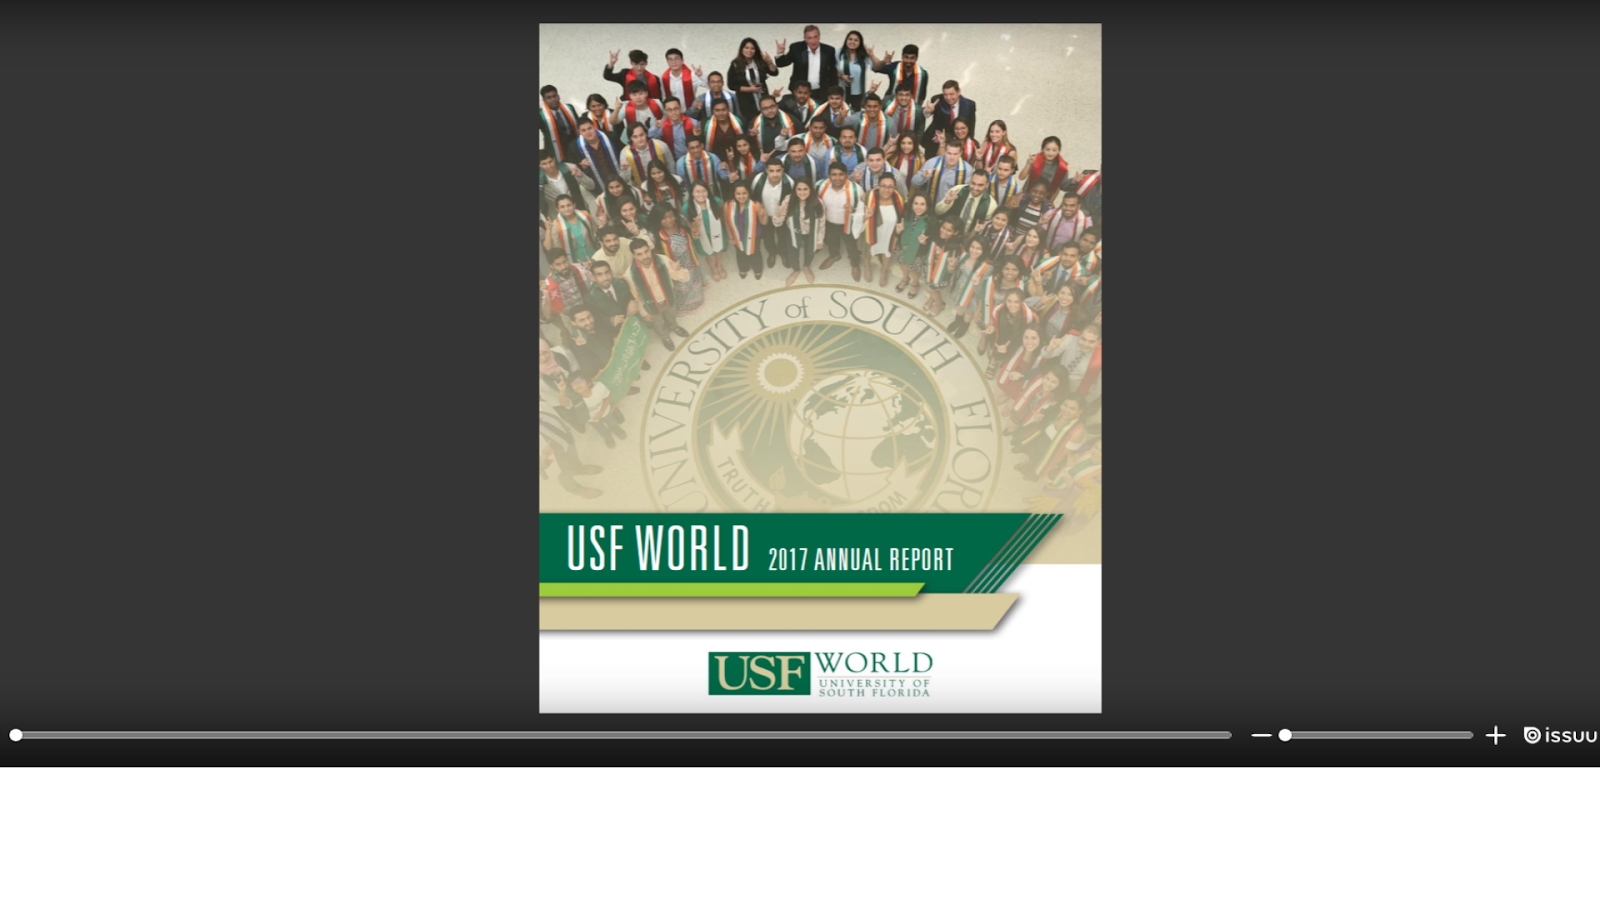 McLauchlan's Macedonian Musings: USF World Annual Report